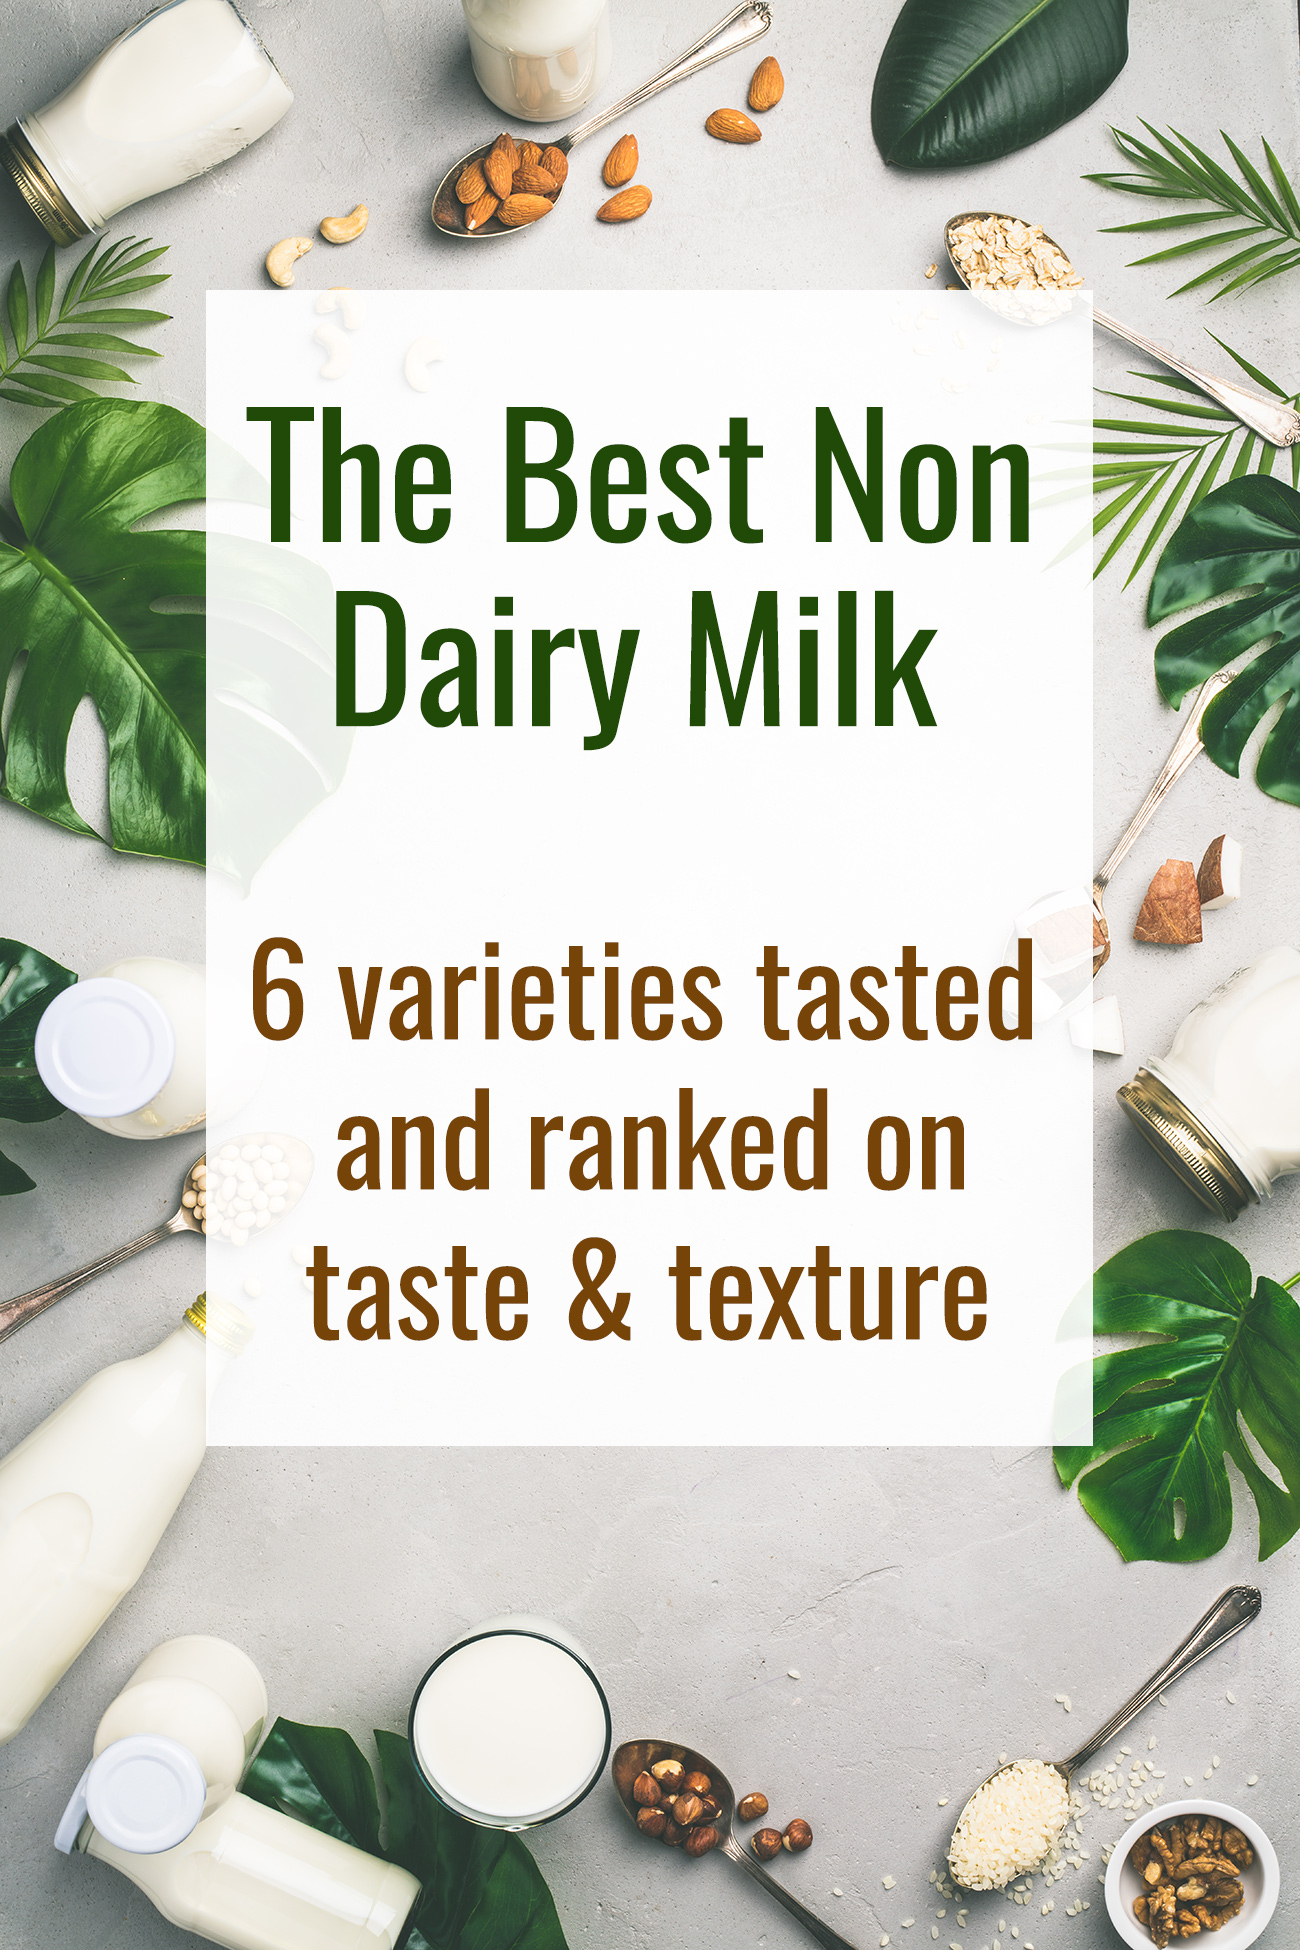 Non Dairy Milk Taste Test - Ever wondered what the Best Non Dairy Milk is? We taste tested 6 differnent brands and kinds so that you can figure out what is the best option for you! | #Foodfaithfitness | #Dairyfree #glutenfree #healthy #cleaneating